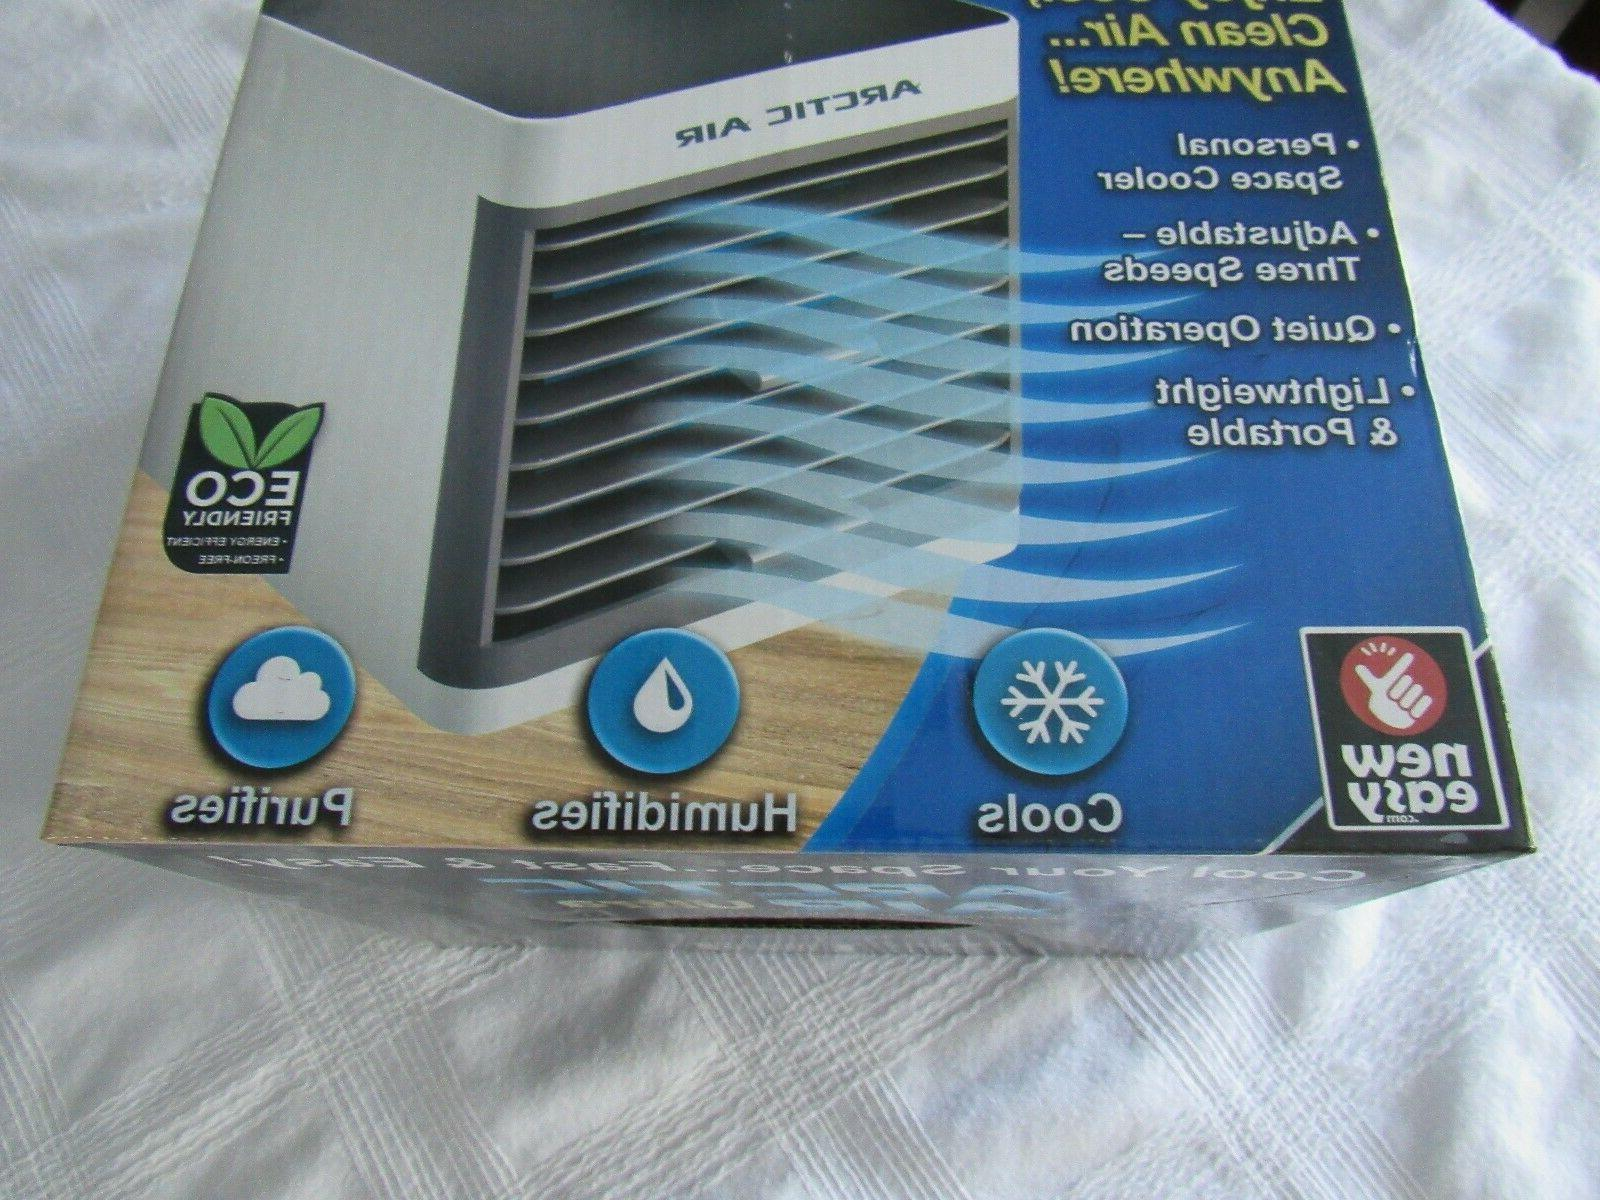 NEW ARCTIC AIR EVAPORATIVE AIR COOLER FRIENDLY AS ON TV